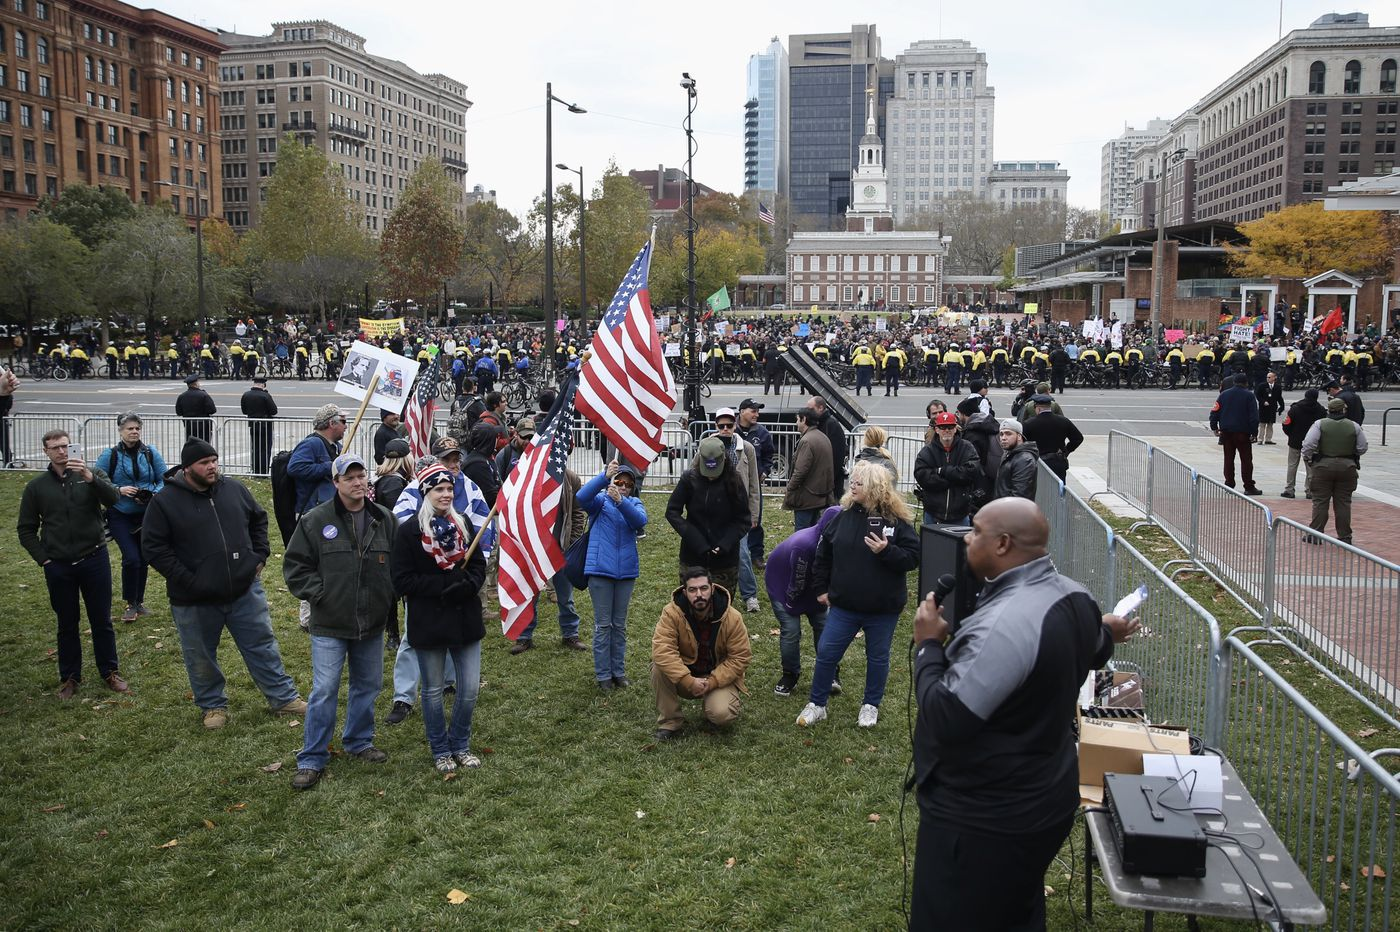 4 arrested, but calm mostly prevails at 'We the People' rally on Independence Mall